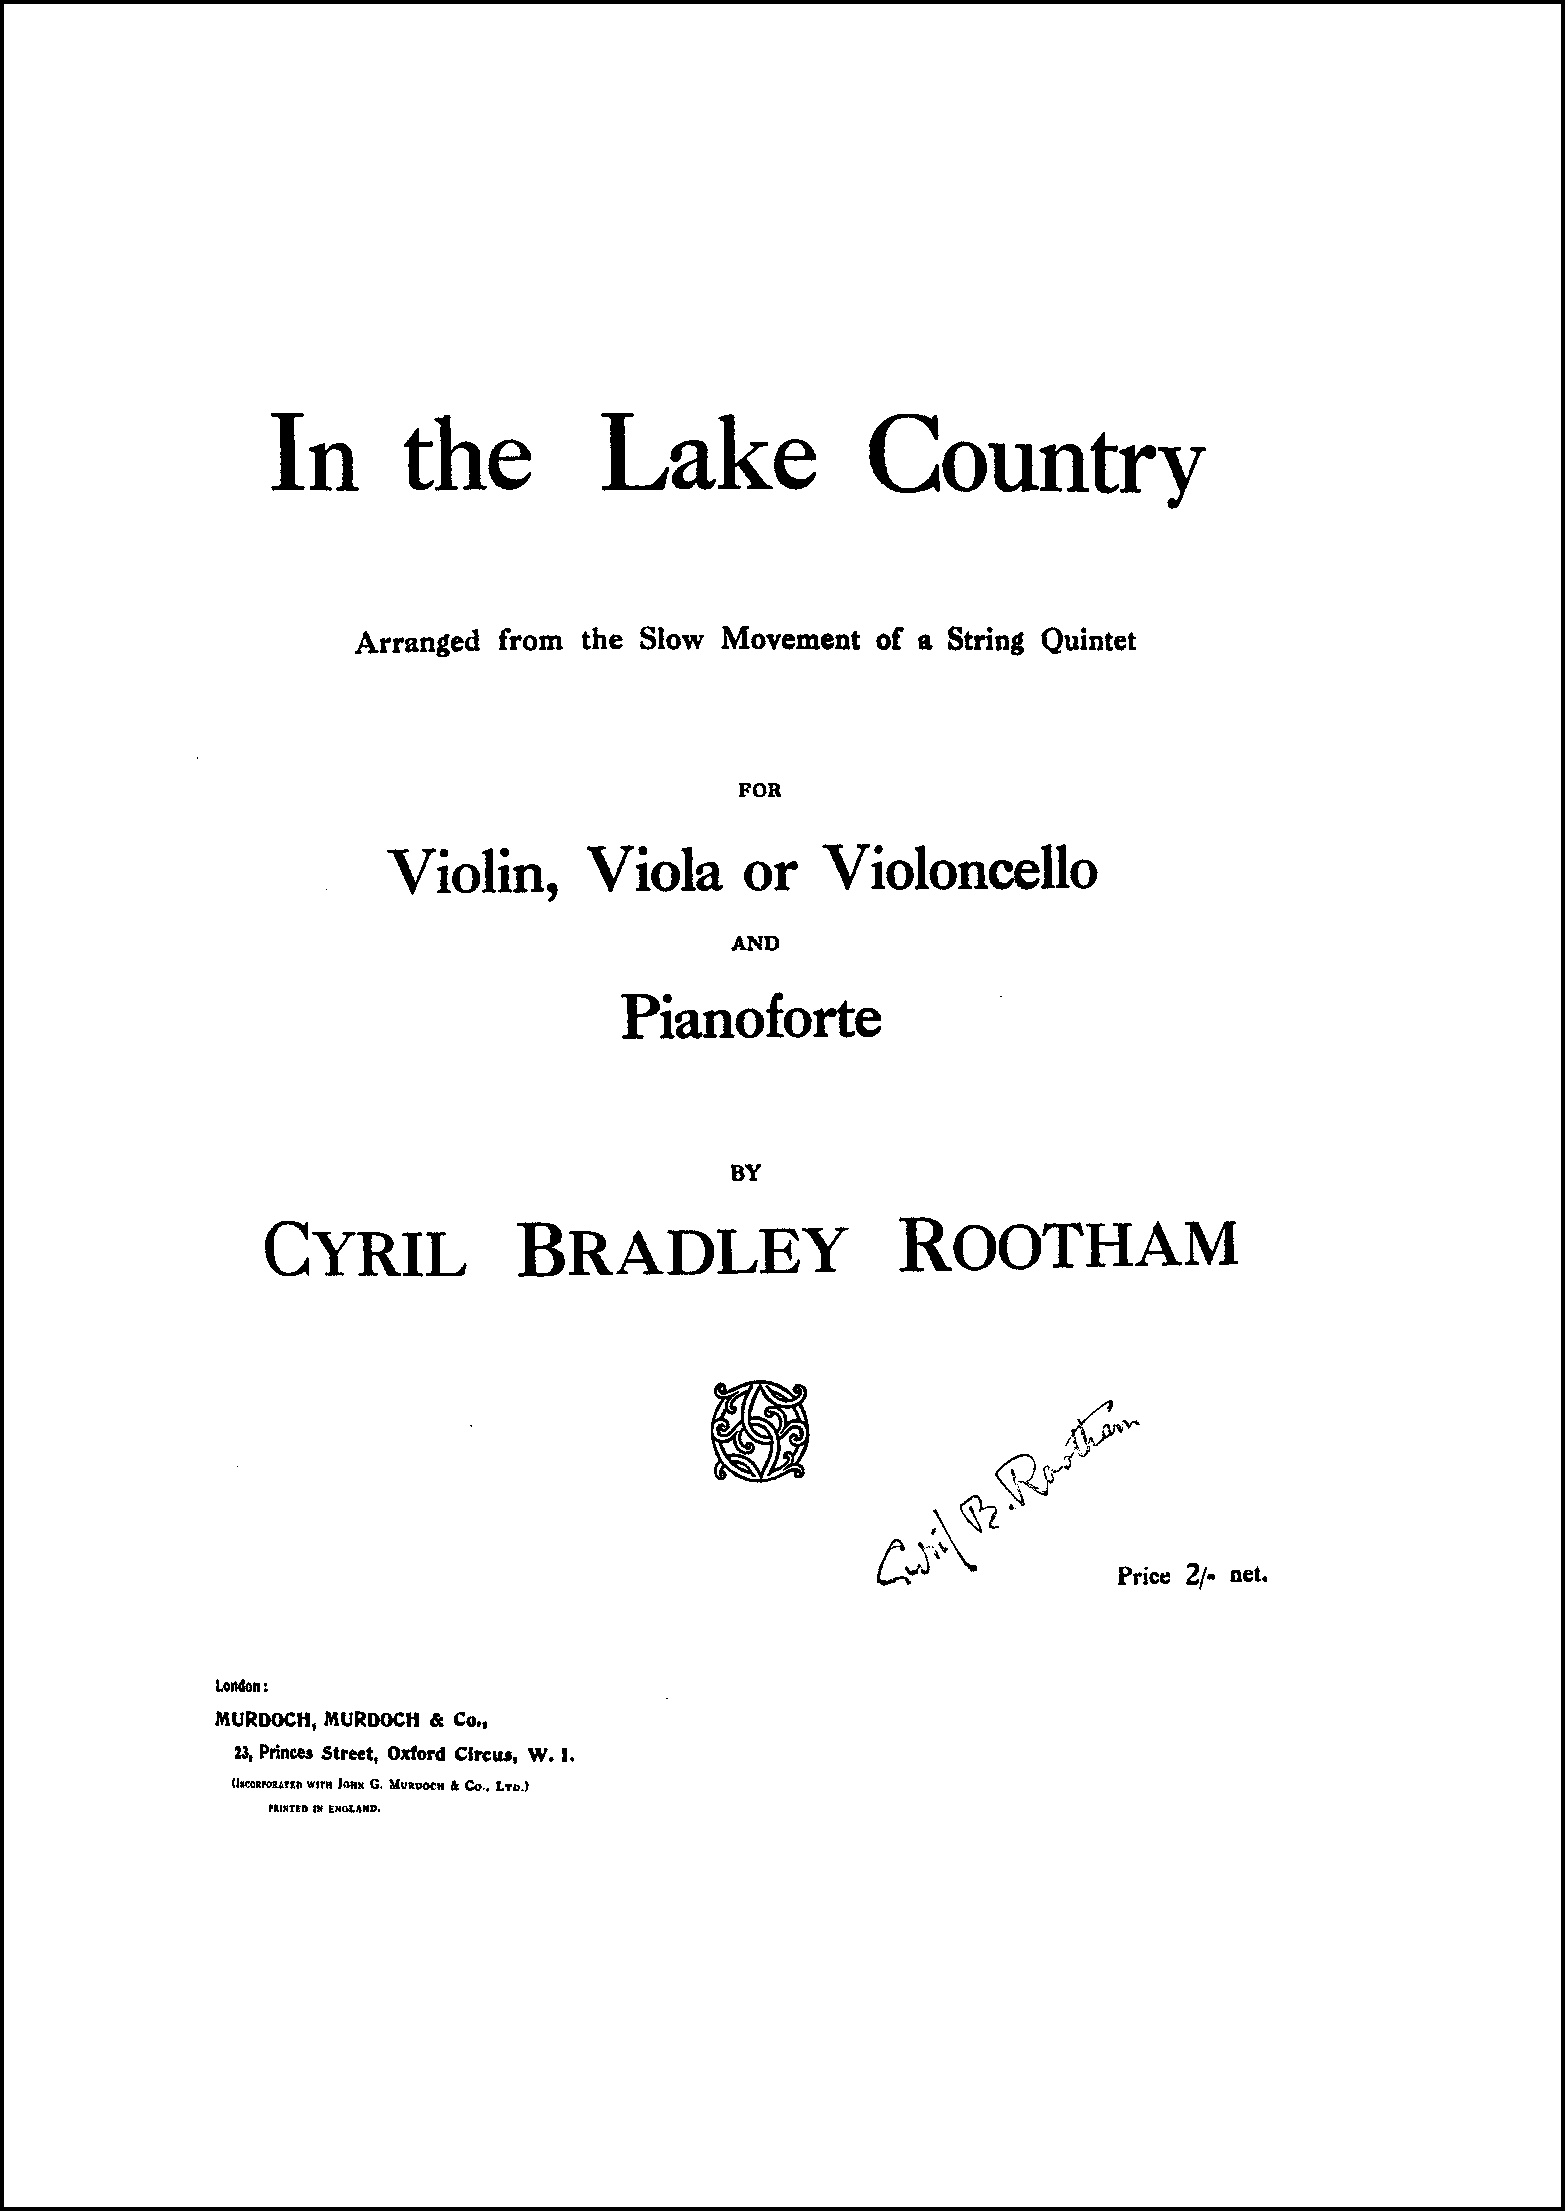 In the Lake Country original edition